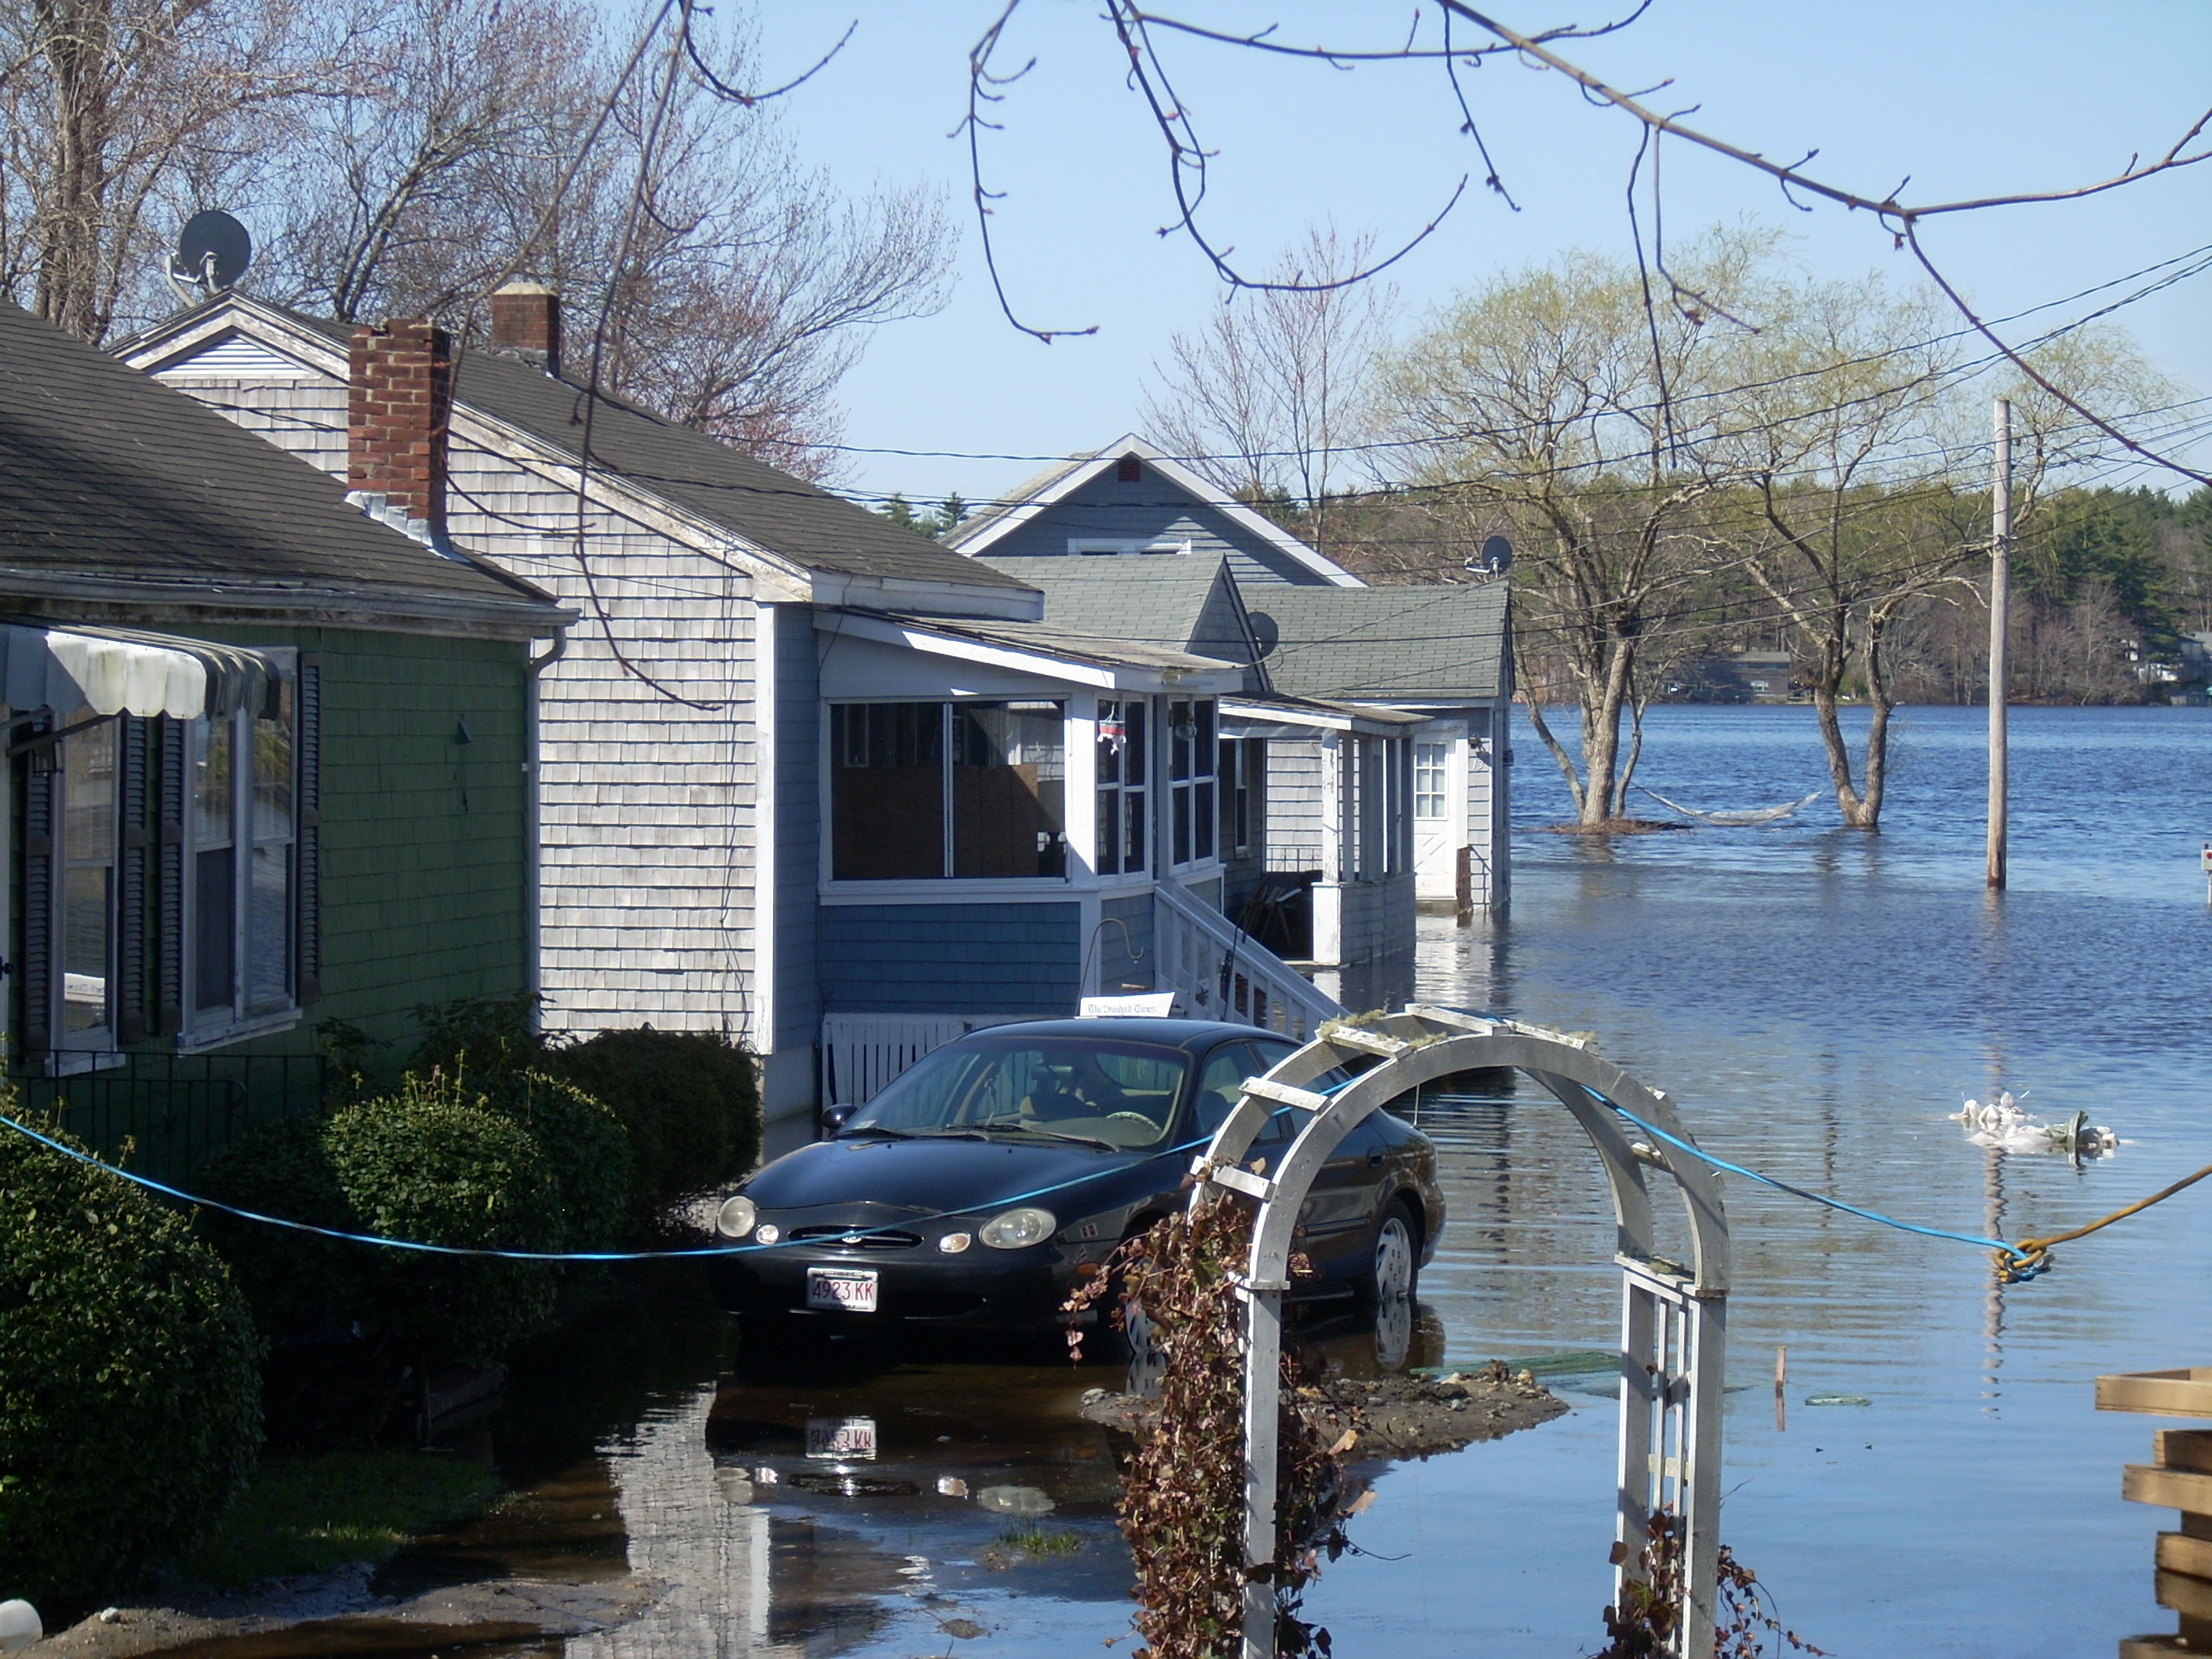 A photo of the flood in Lakeville in March in 2010 taken April 3rd